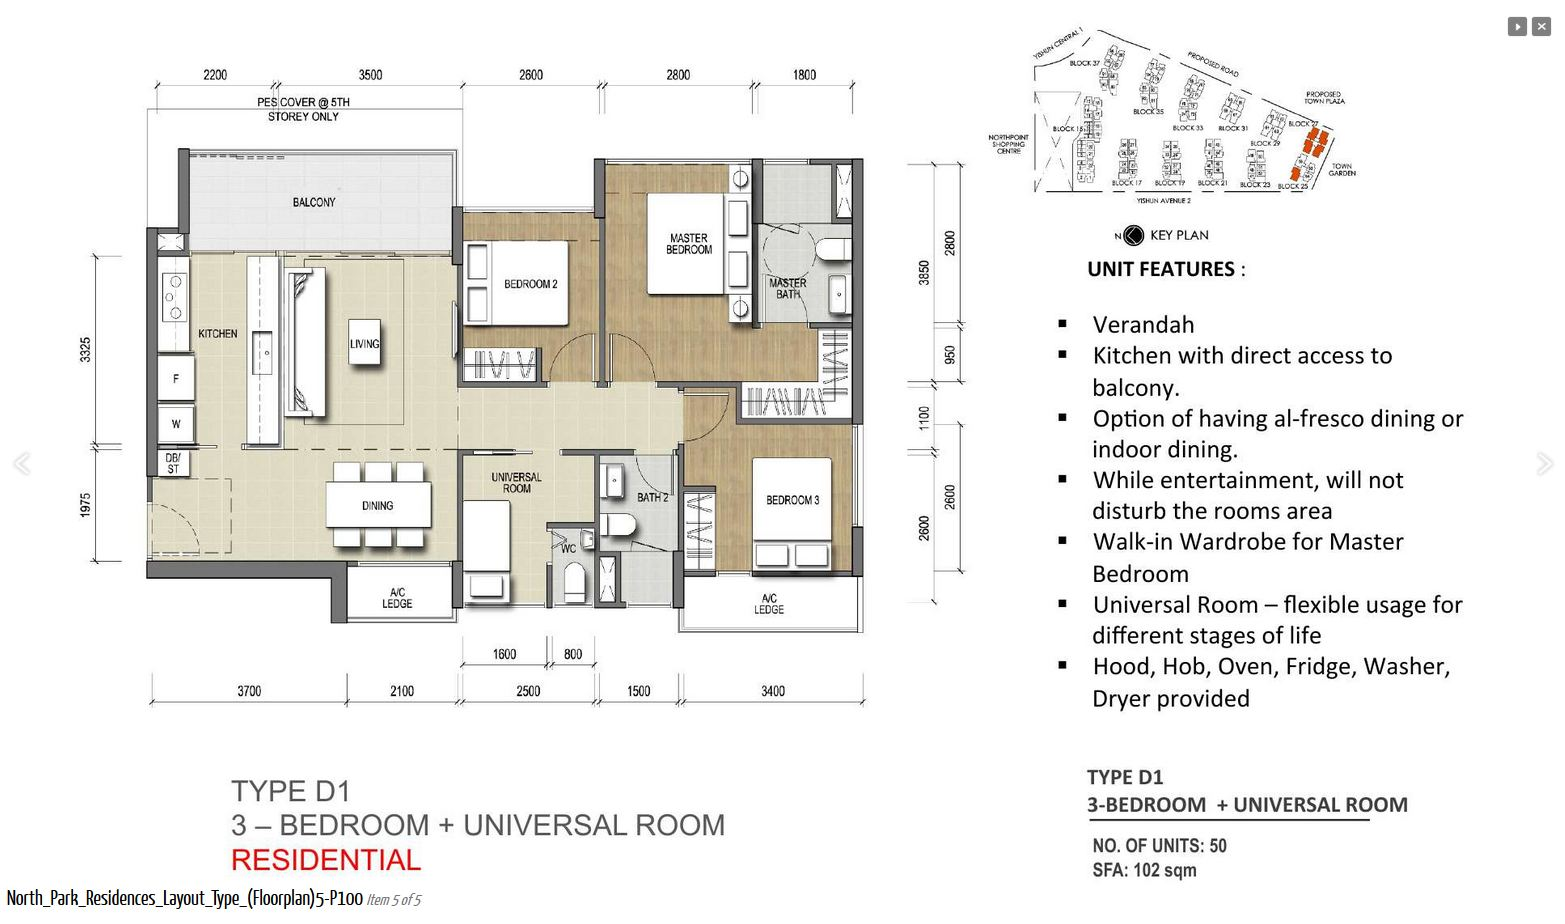 3 Bedroom + Universal Room